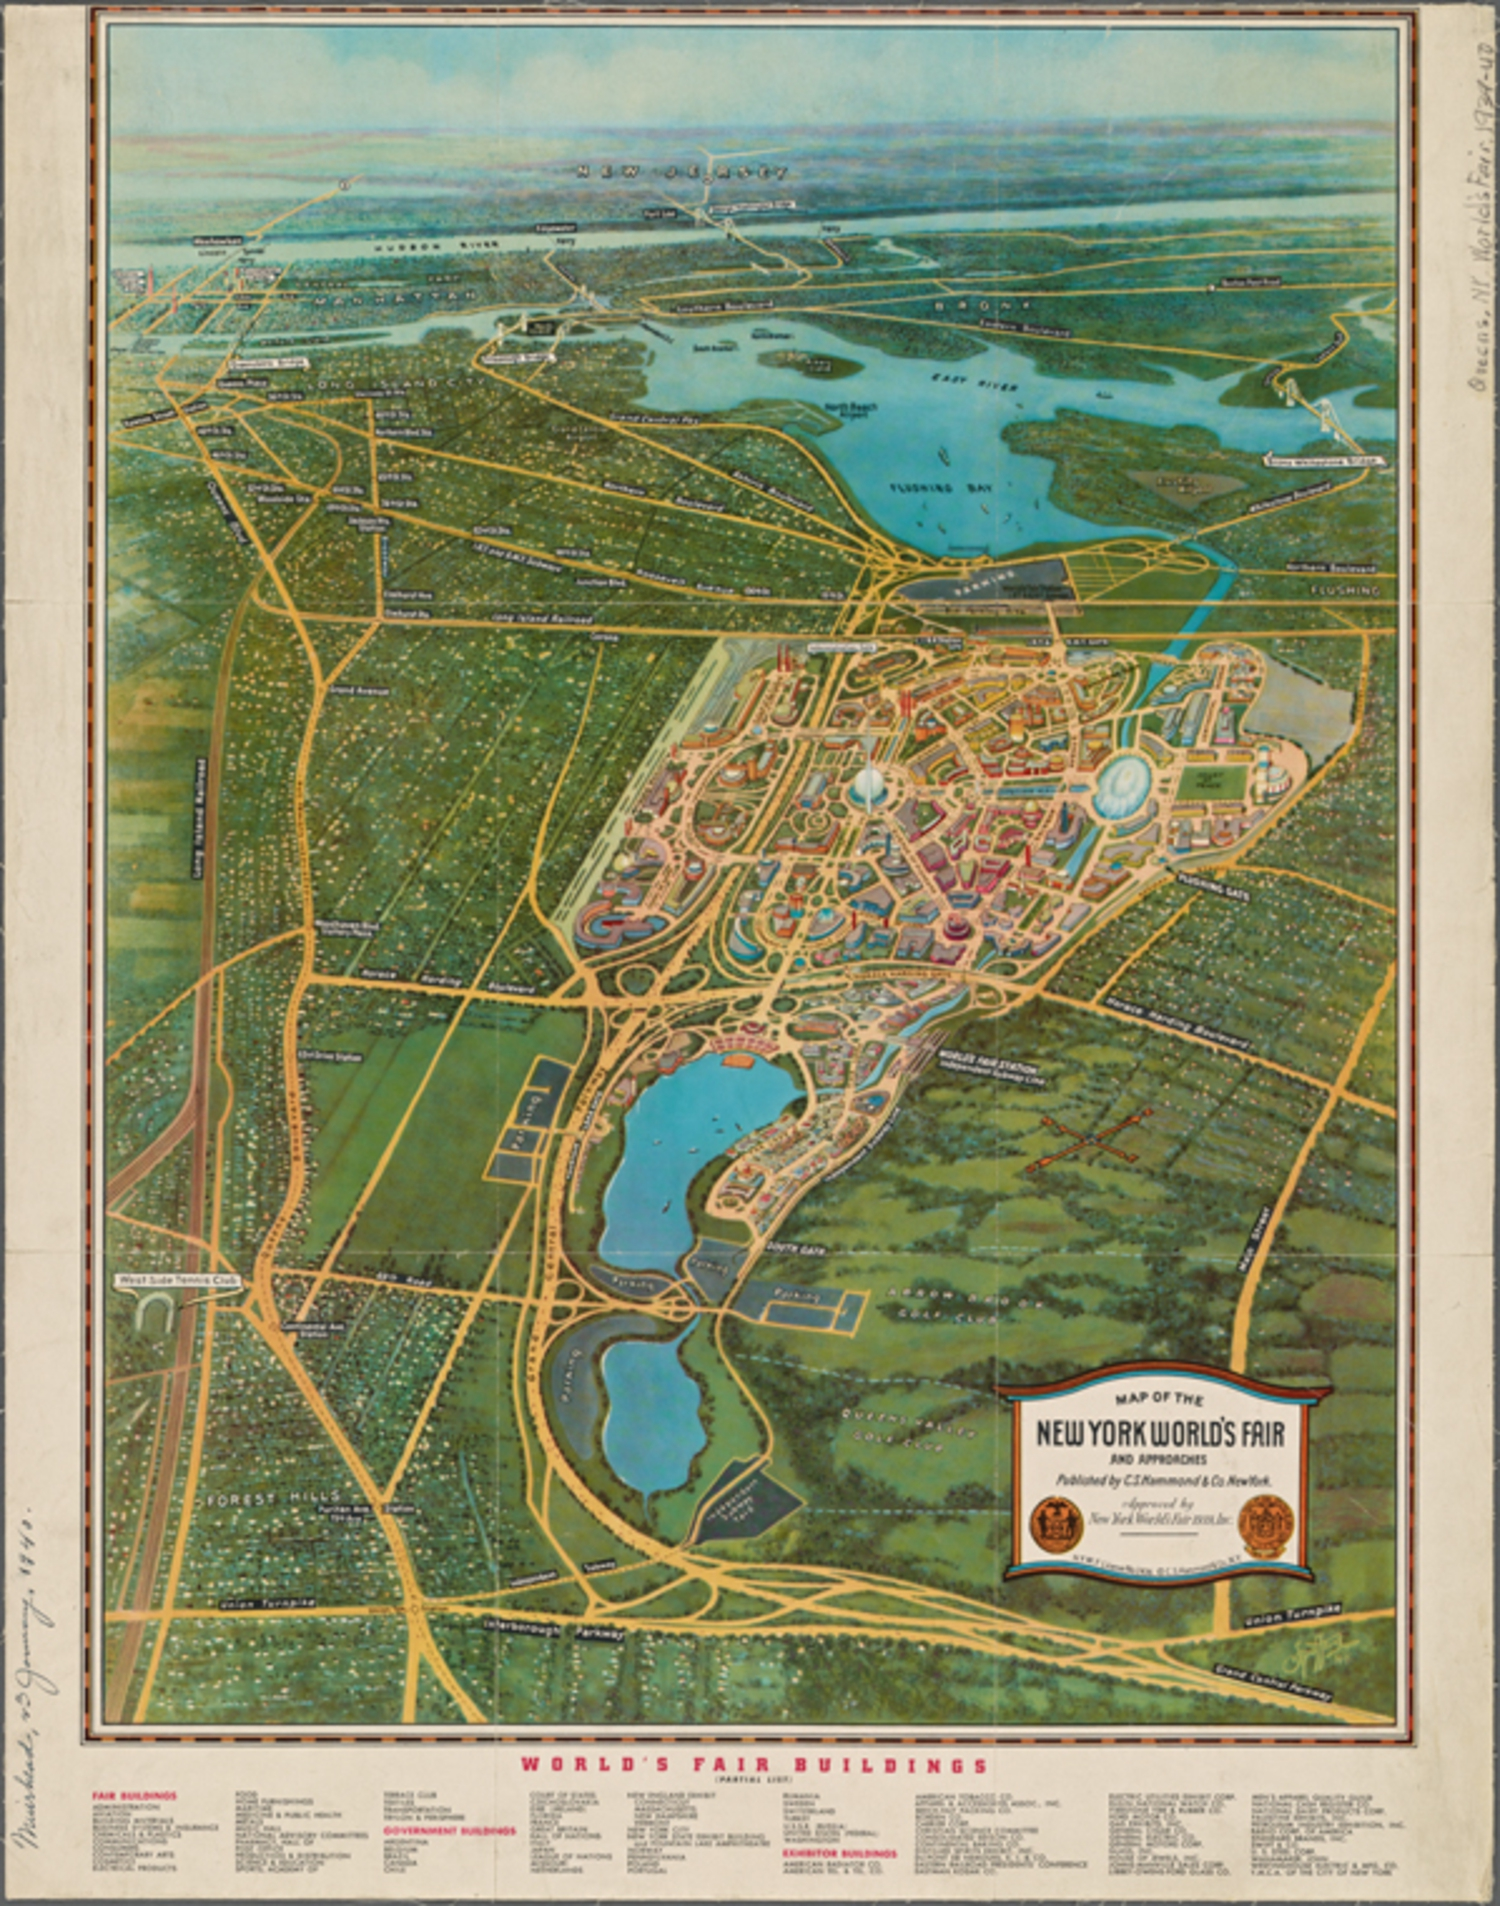 Map of the New York world's fair and approaches (1939)